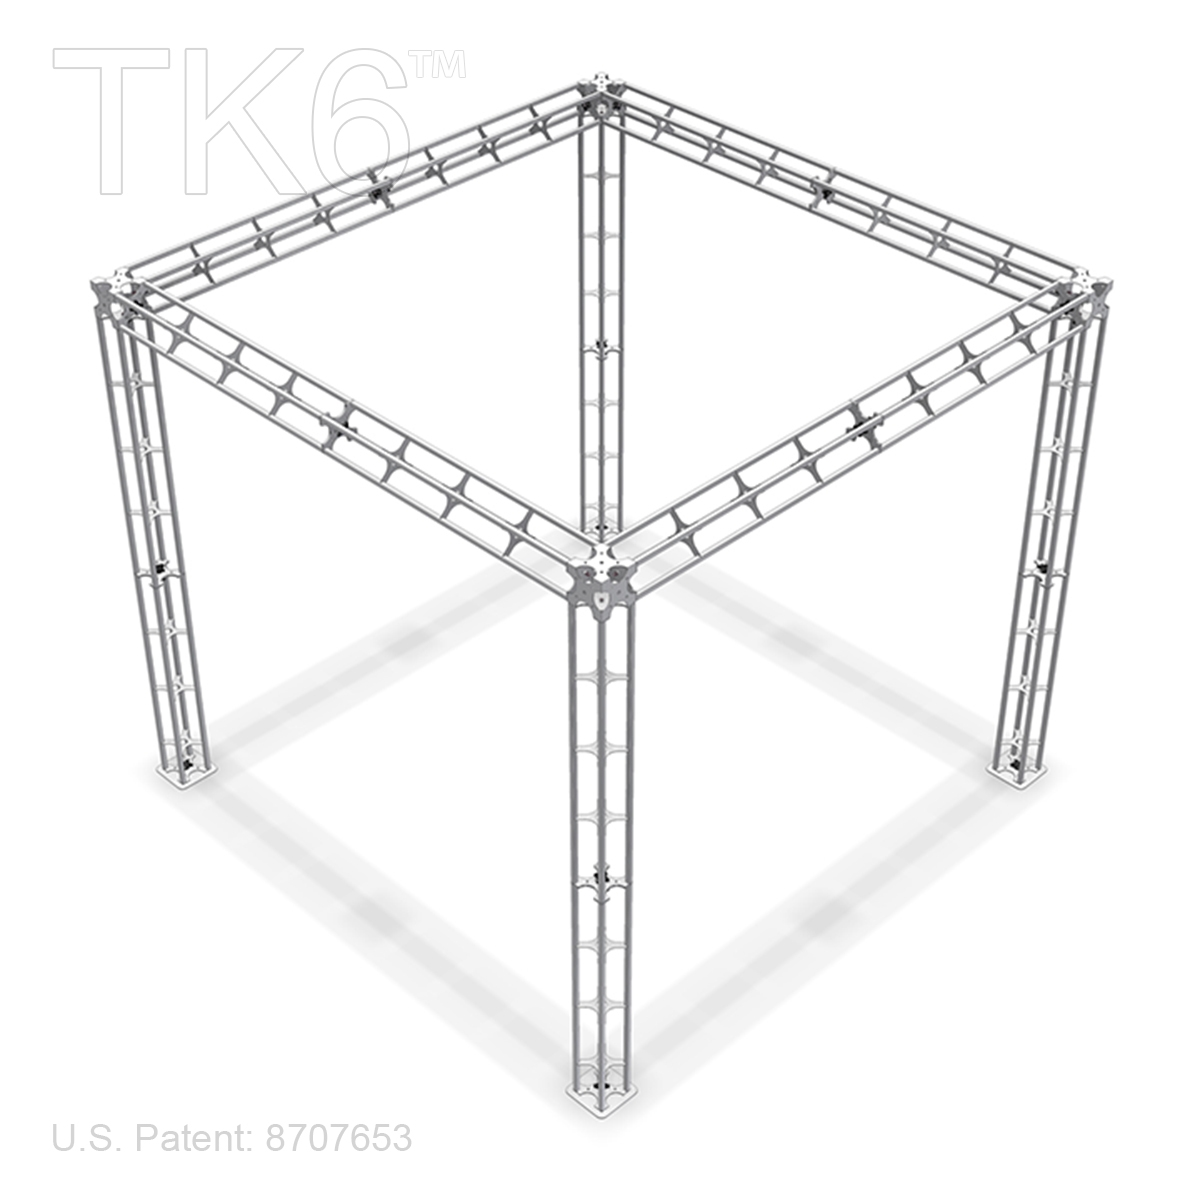 BETHEL - 10FT X 10FT ALUMINUM TRUSS DISPLAY [FRAME ONLY]